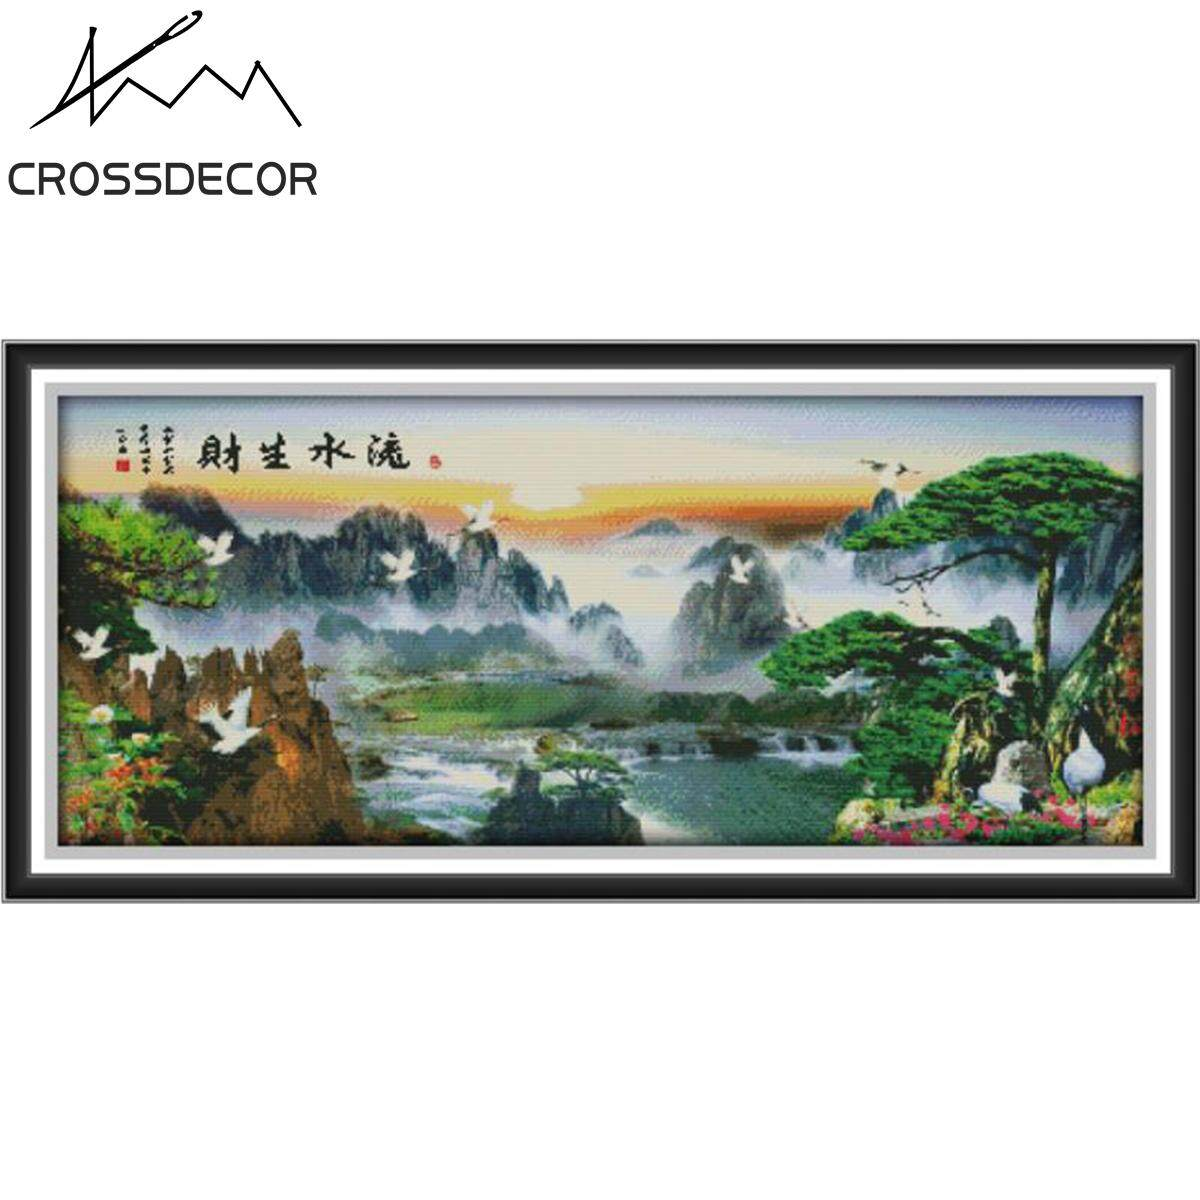 Chinese Style Precise Stamped Cross-Stitch Complete Set Running Water Brings Wealth(3) Mountain Water DIY Handmade Embroidery Needlework 11CT Pre-Printed On the Cloth Home Room Office Decor DMC Complete Kits